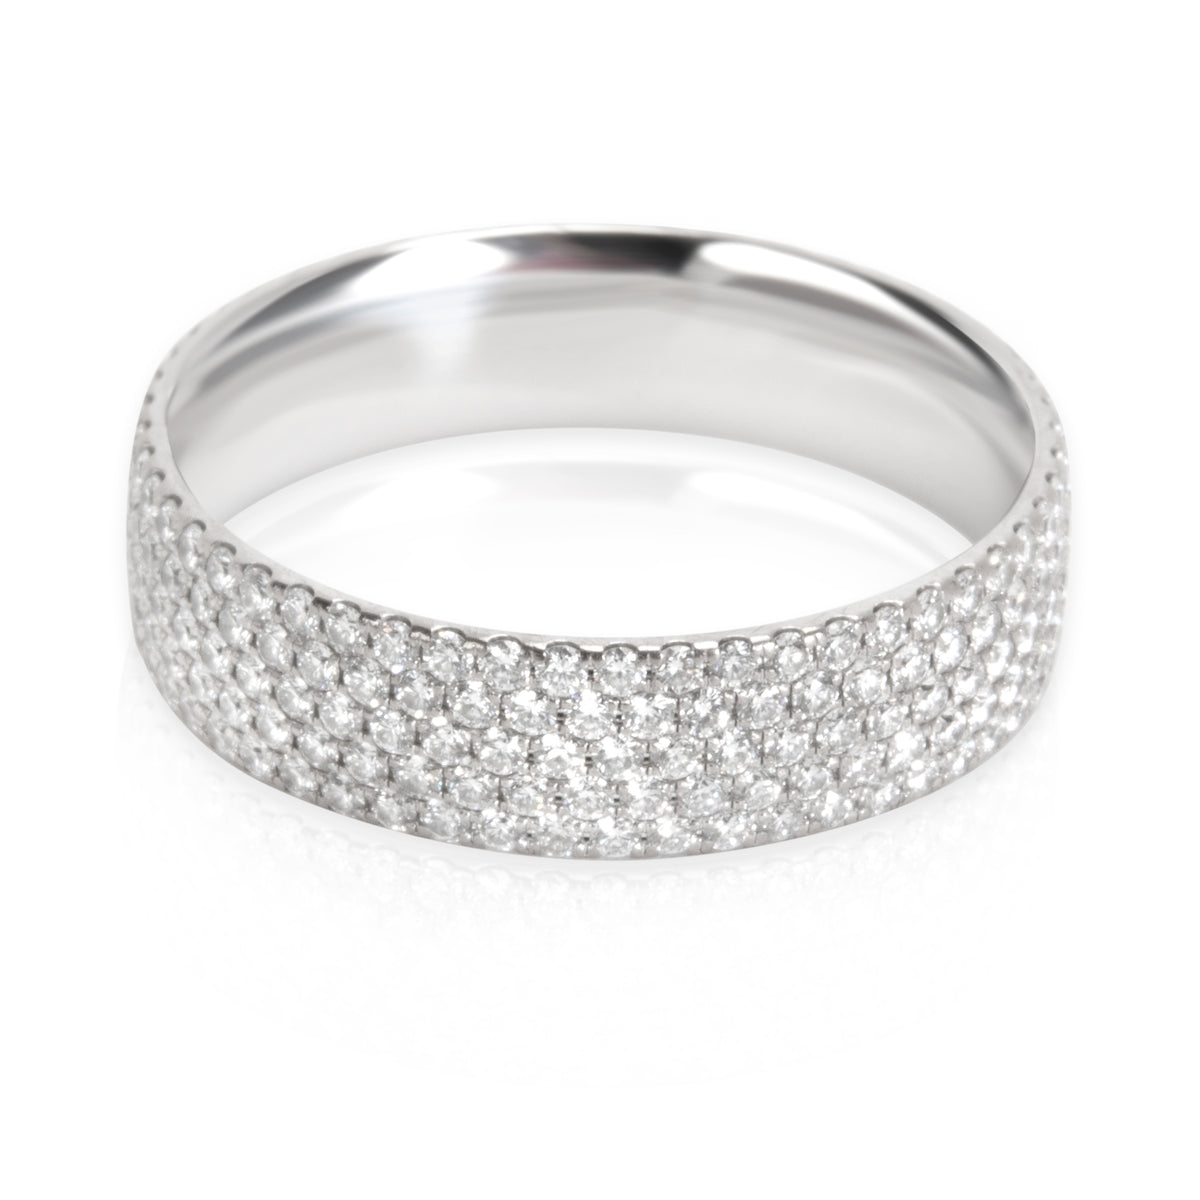 Tiffany & Co. Metro Five Row Diamond Ring in 18K White Gold 0.90 ctw